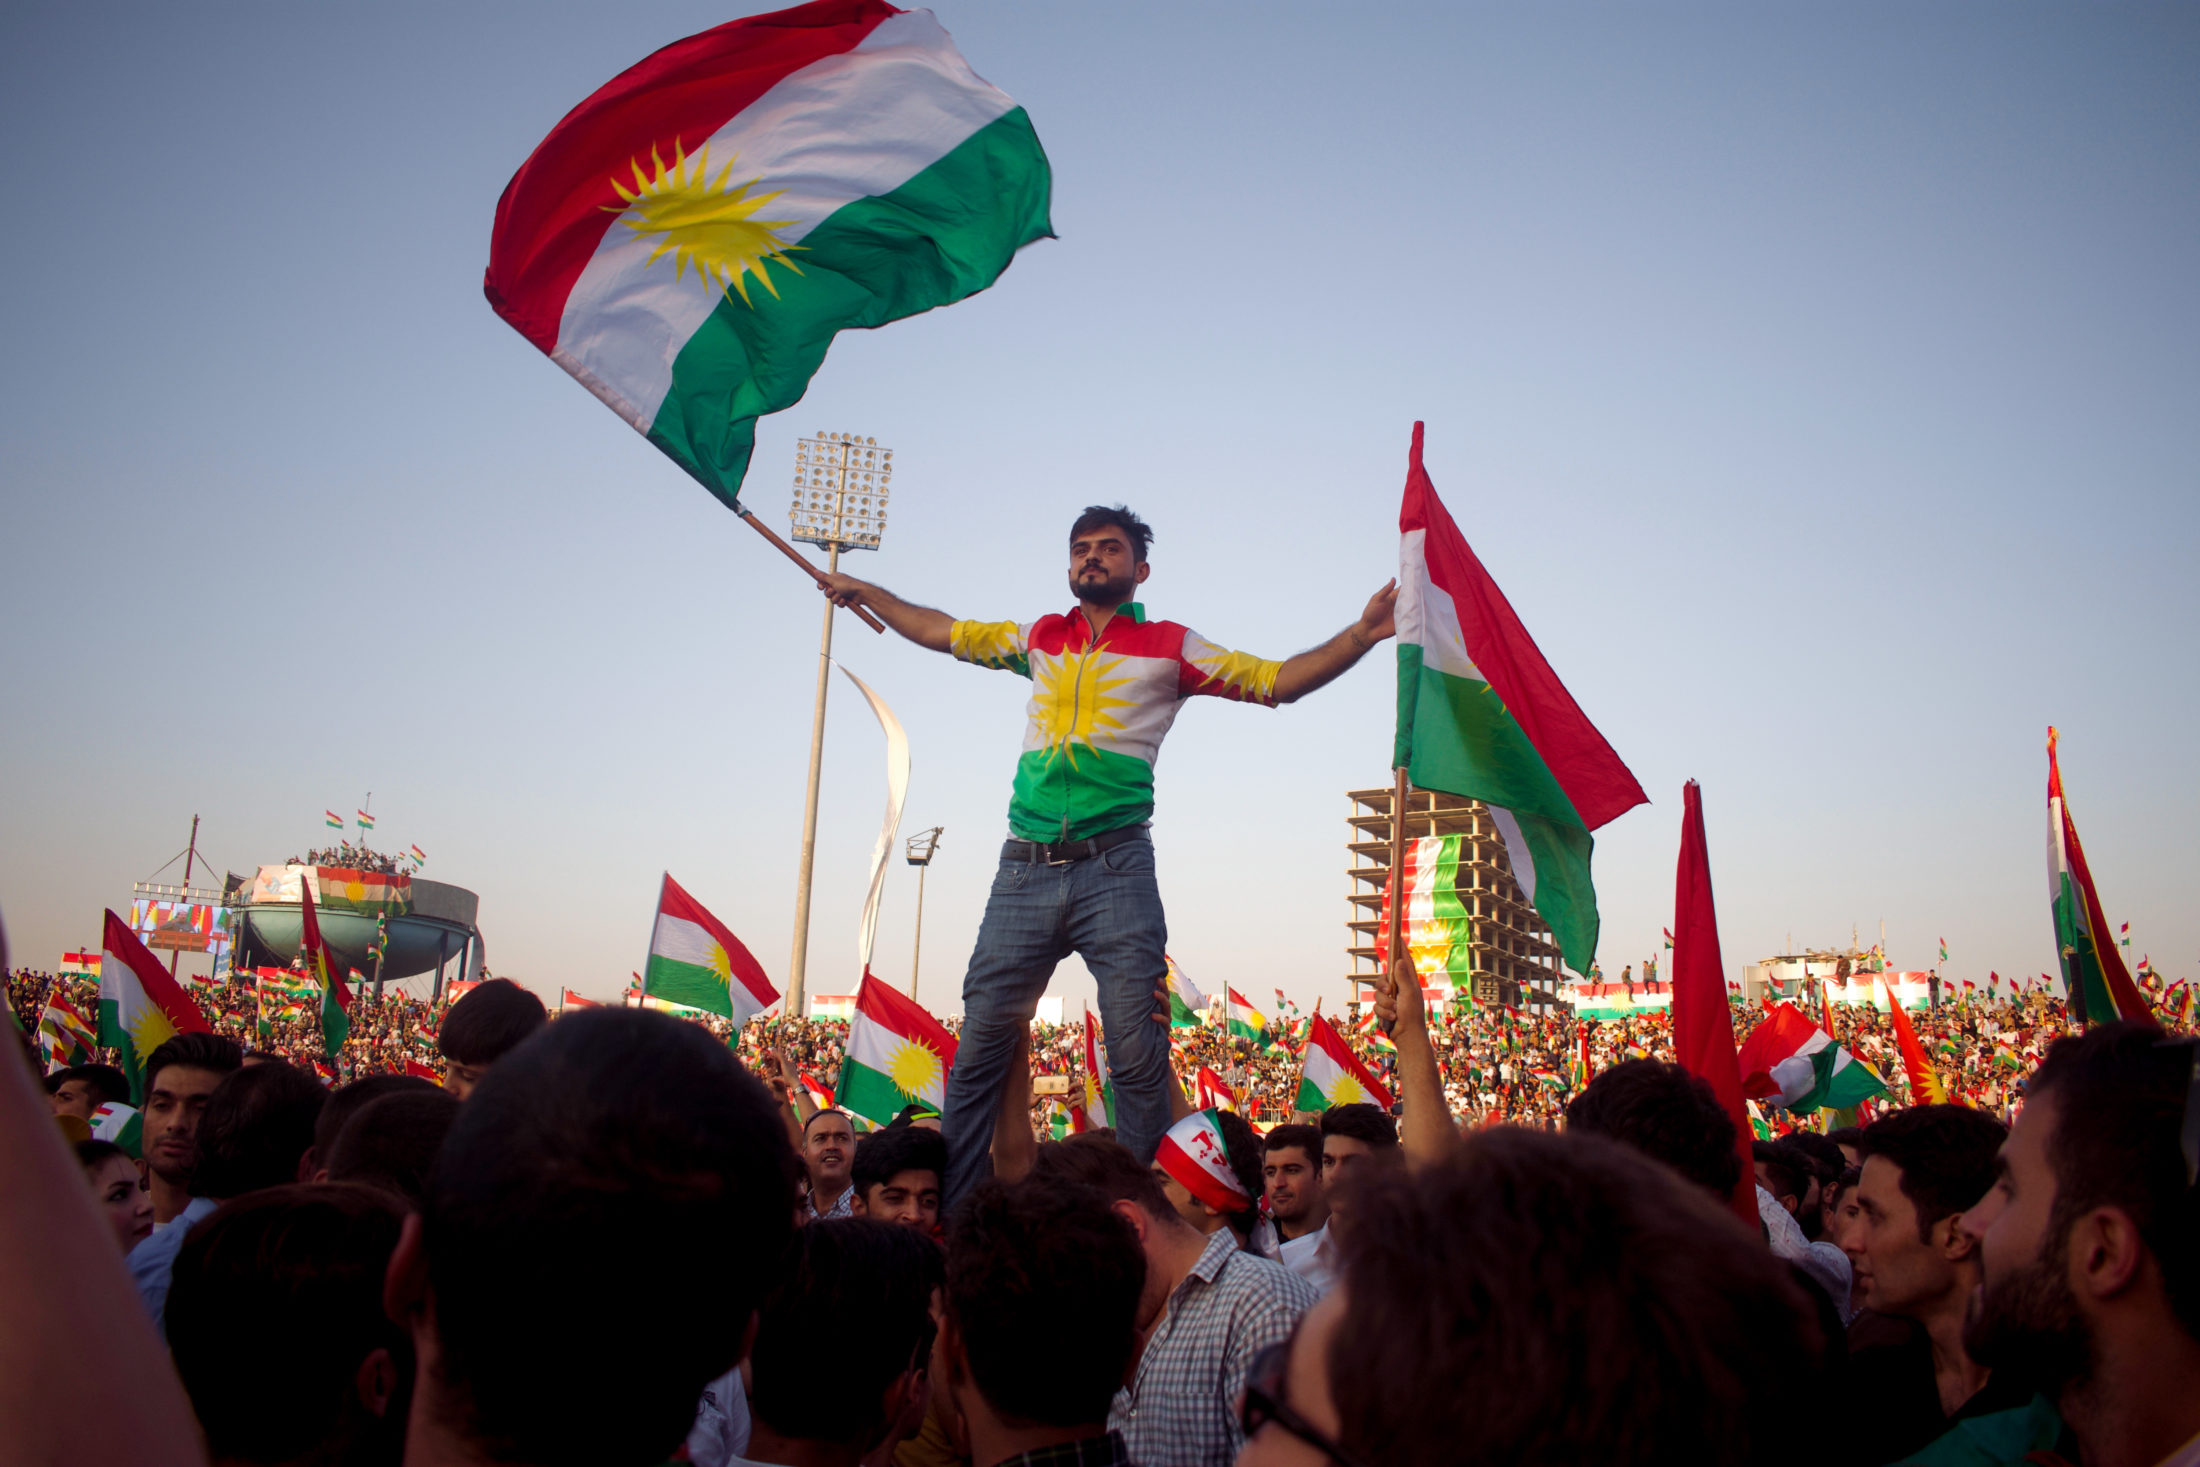 America May Need to Support an Independent Kurdistan Soon